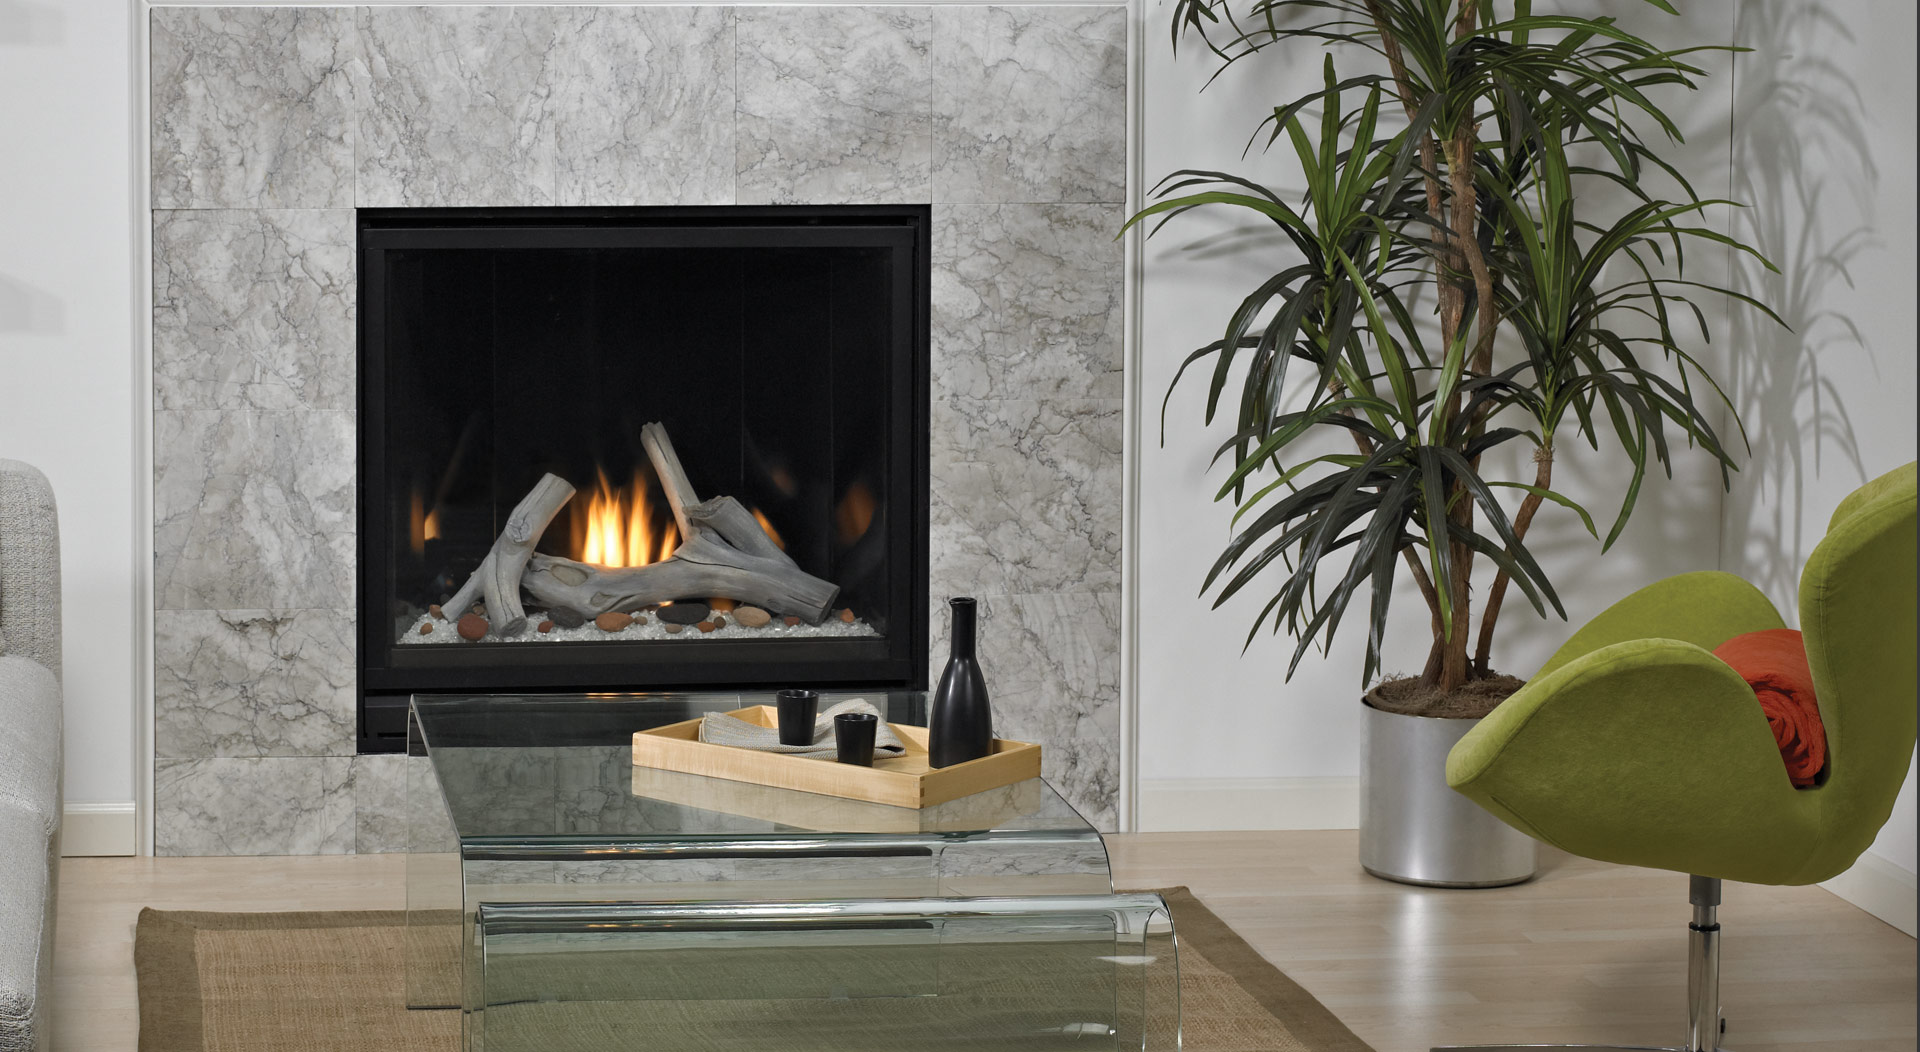 How To Install Gas Logs In A Mobile Home Fireplace